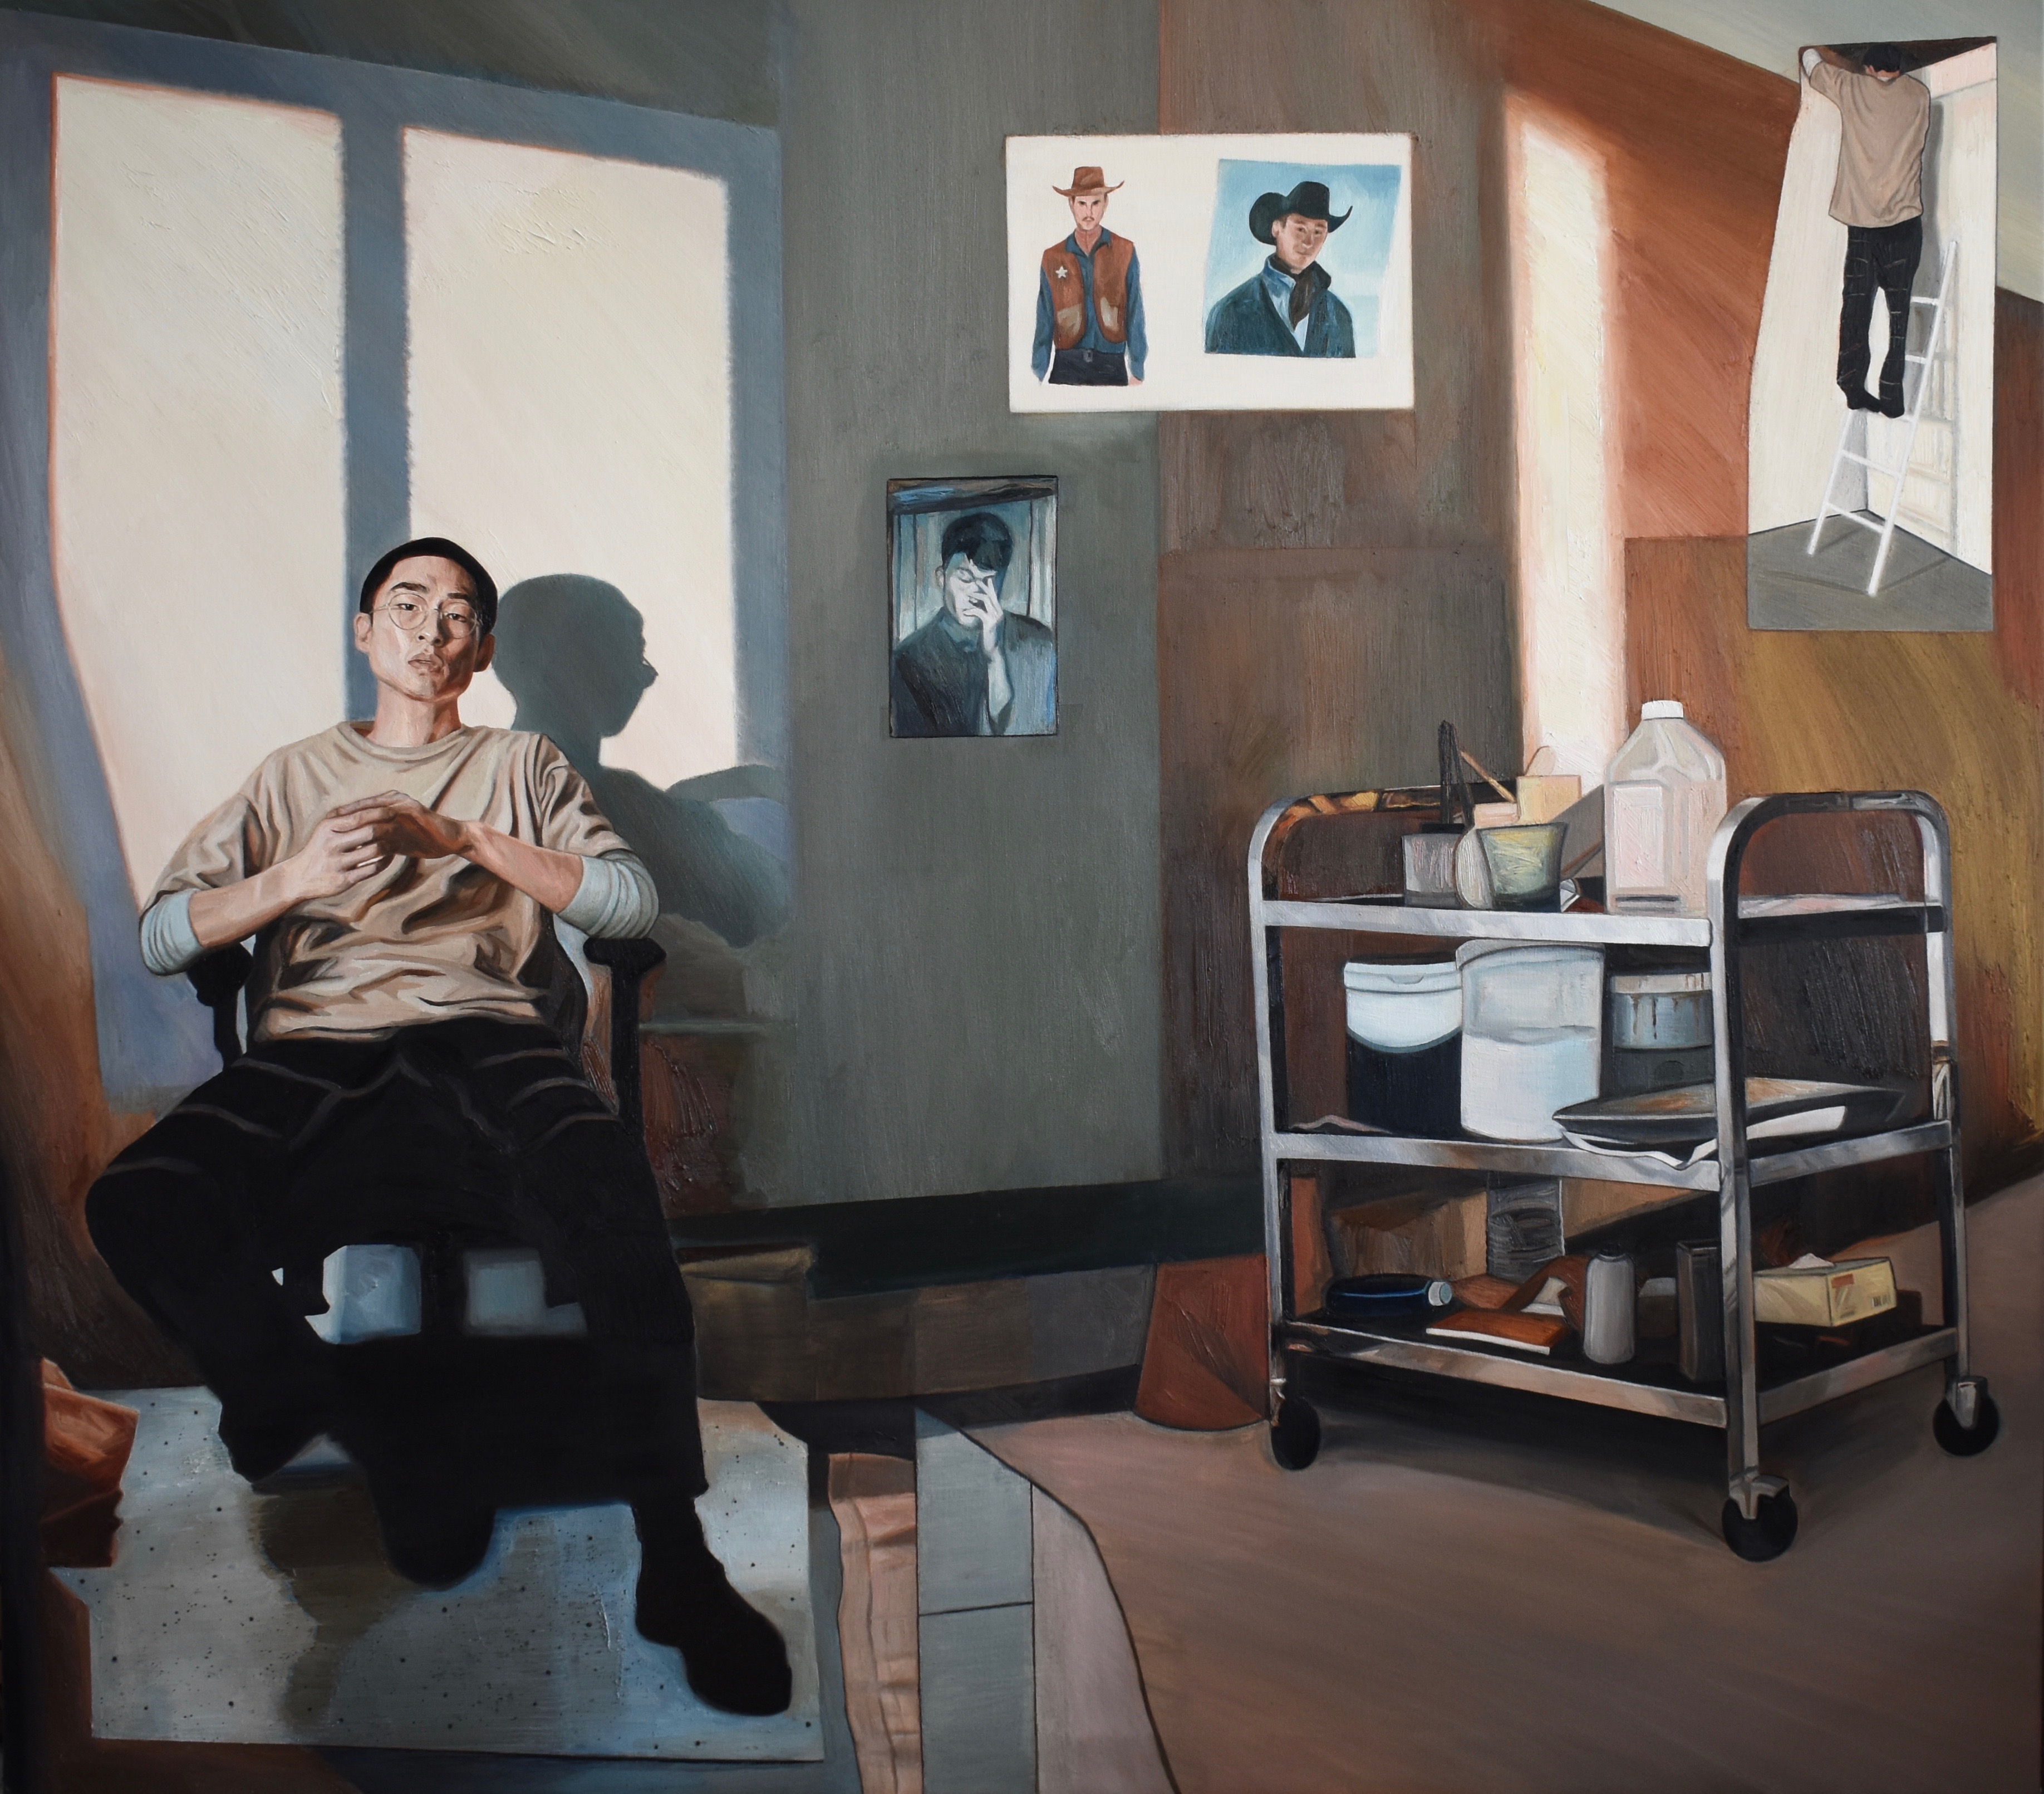 Making Pictures, 2019 William GC Brown oil on canvas, 150cm x 170cm